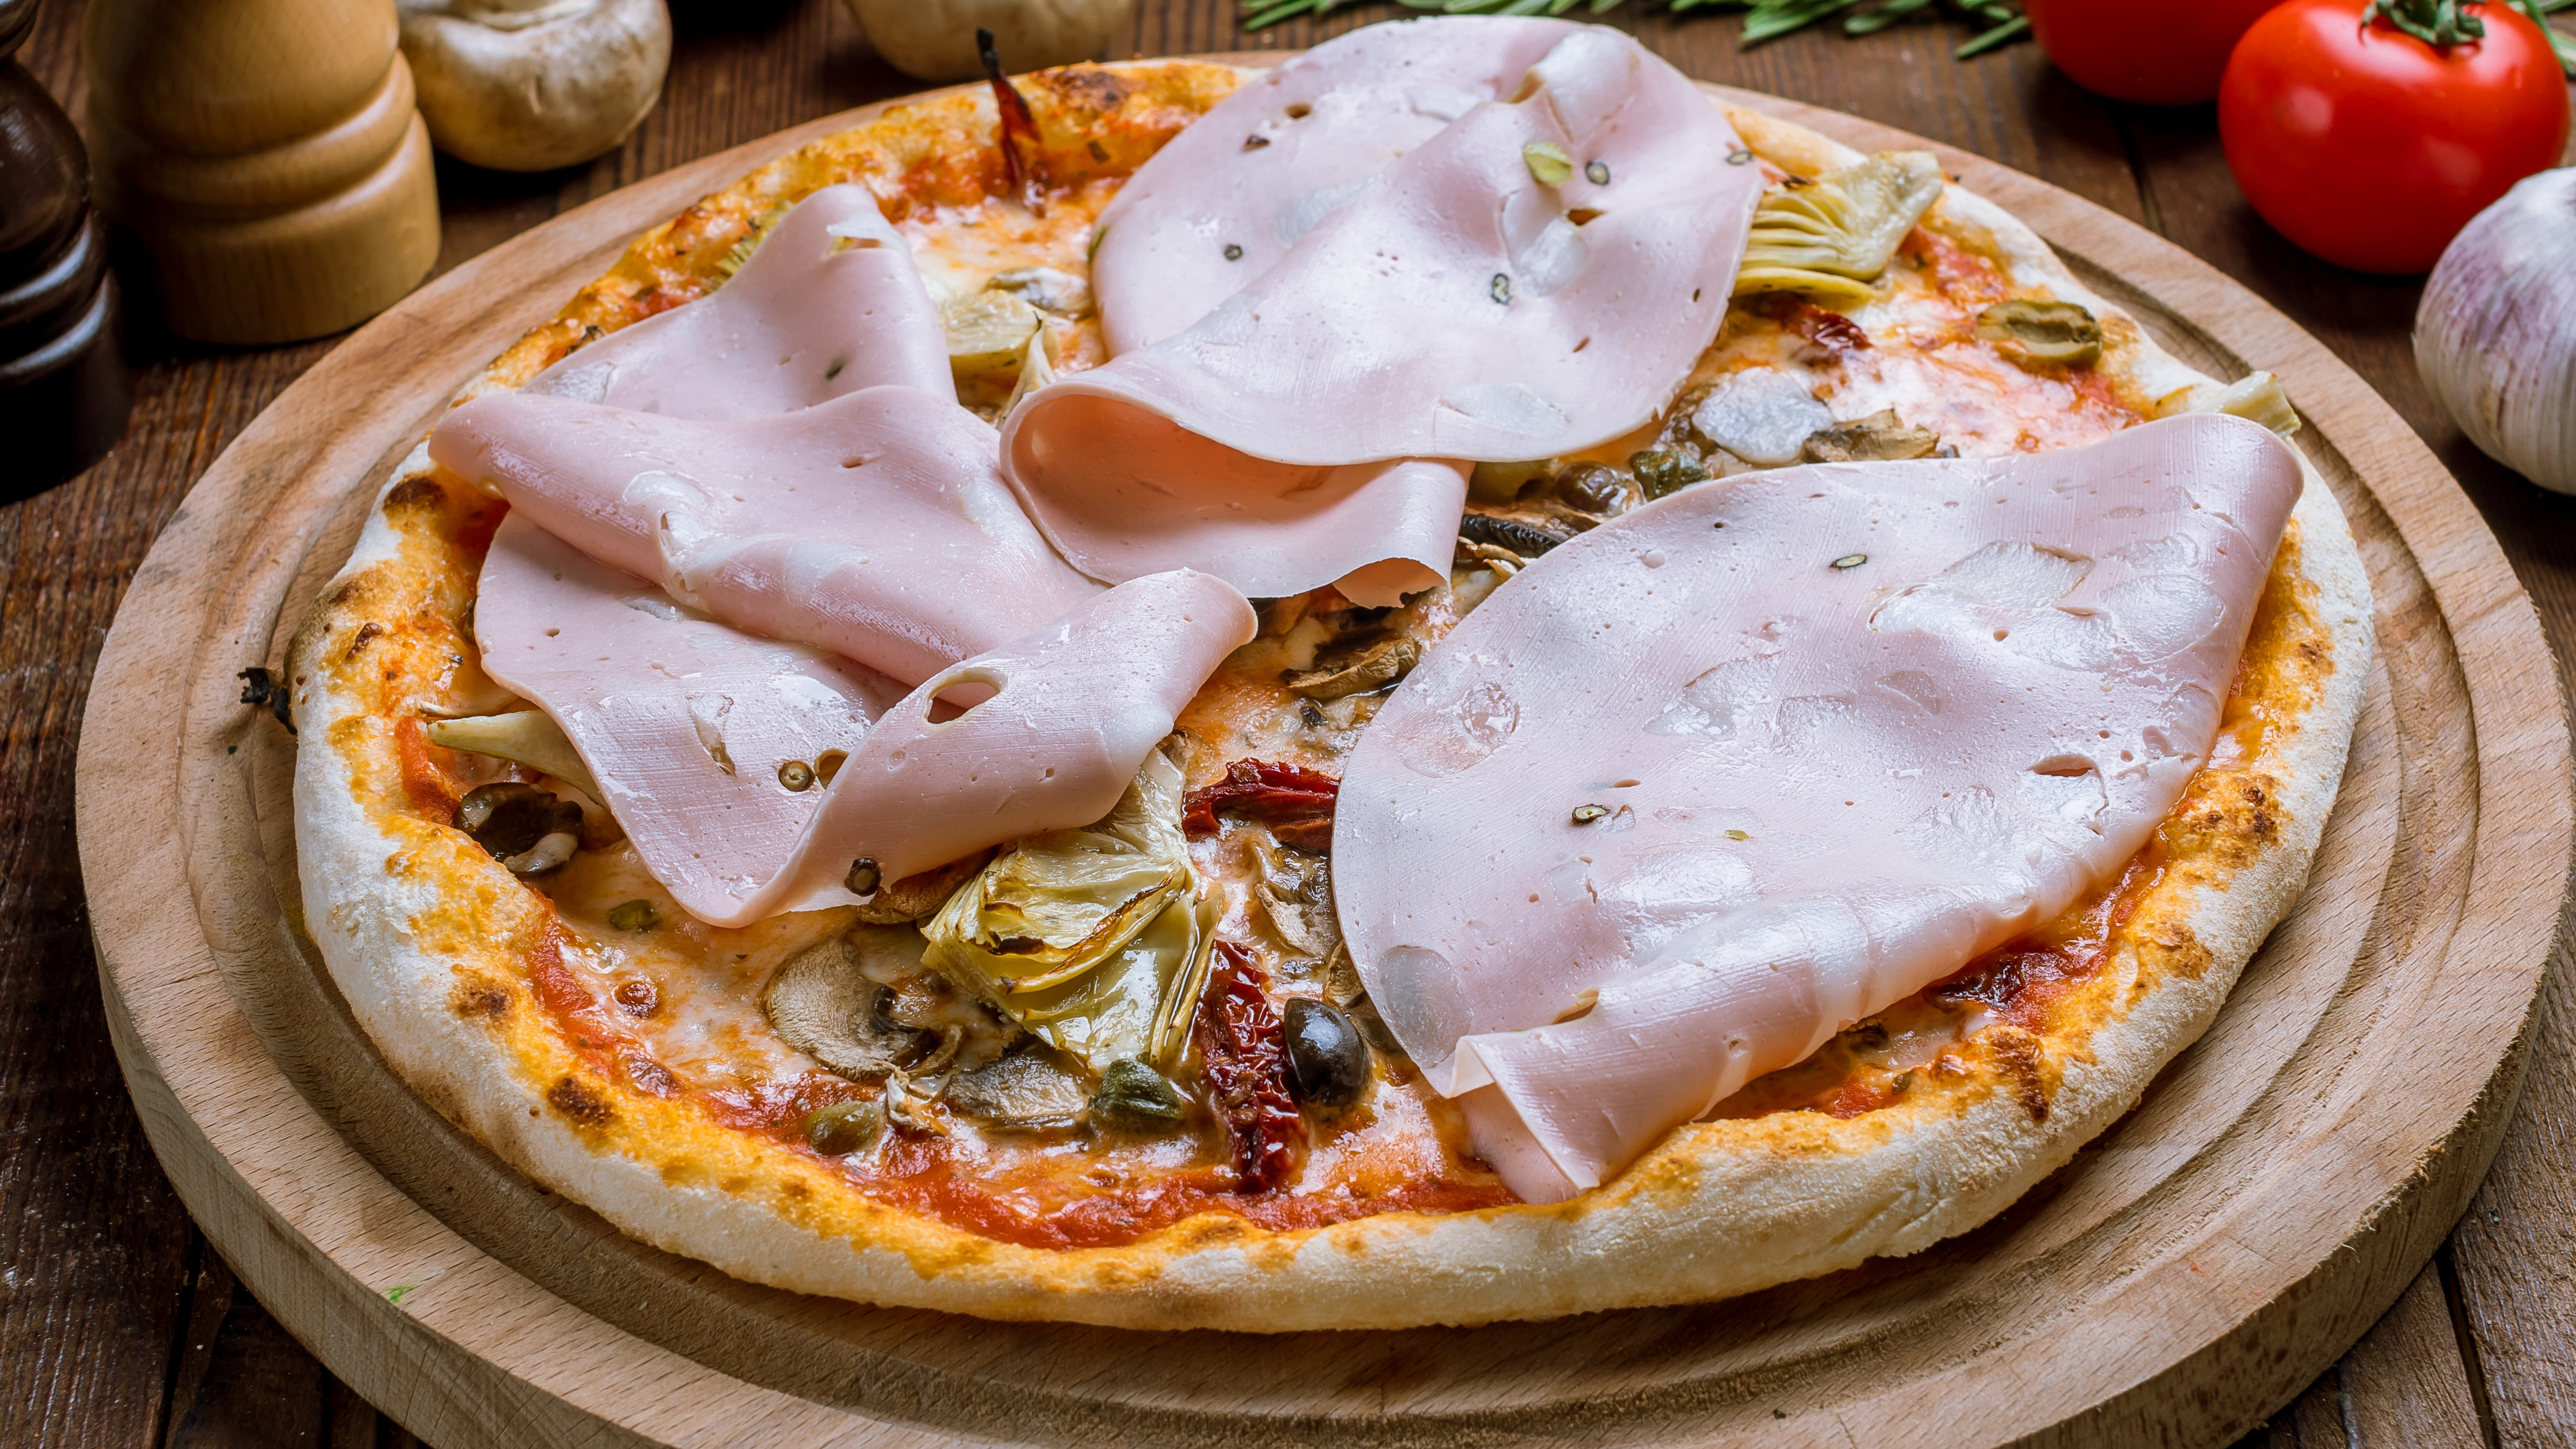 Protect Your Mouth From Hot Pizza With Slices Of Mortadella